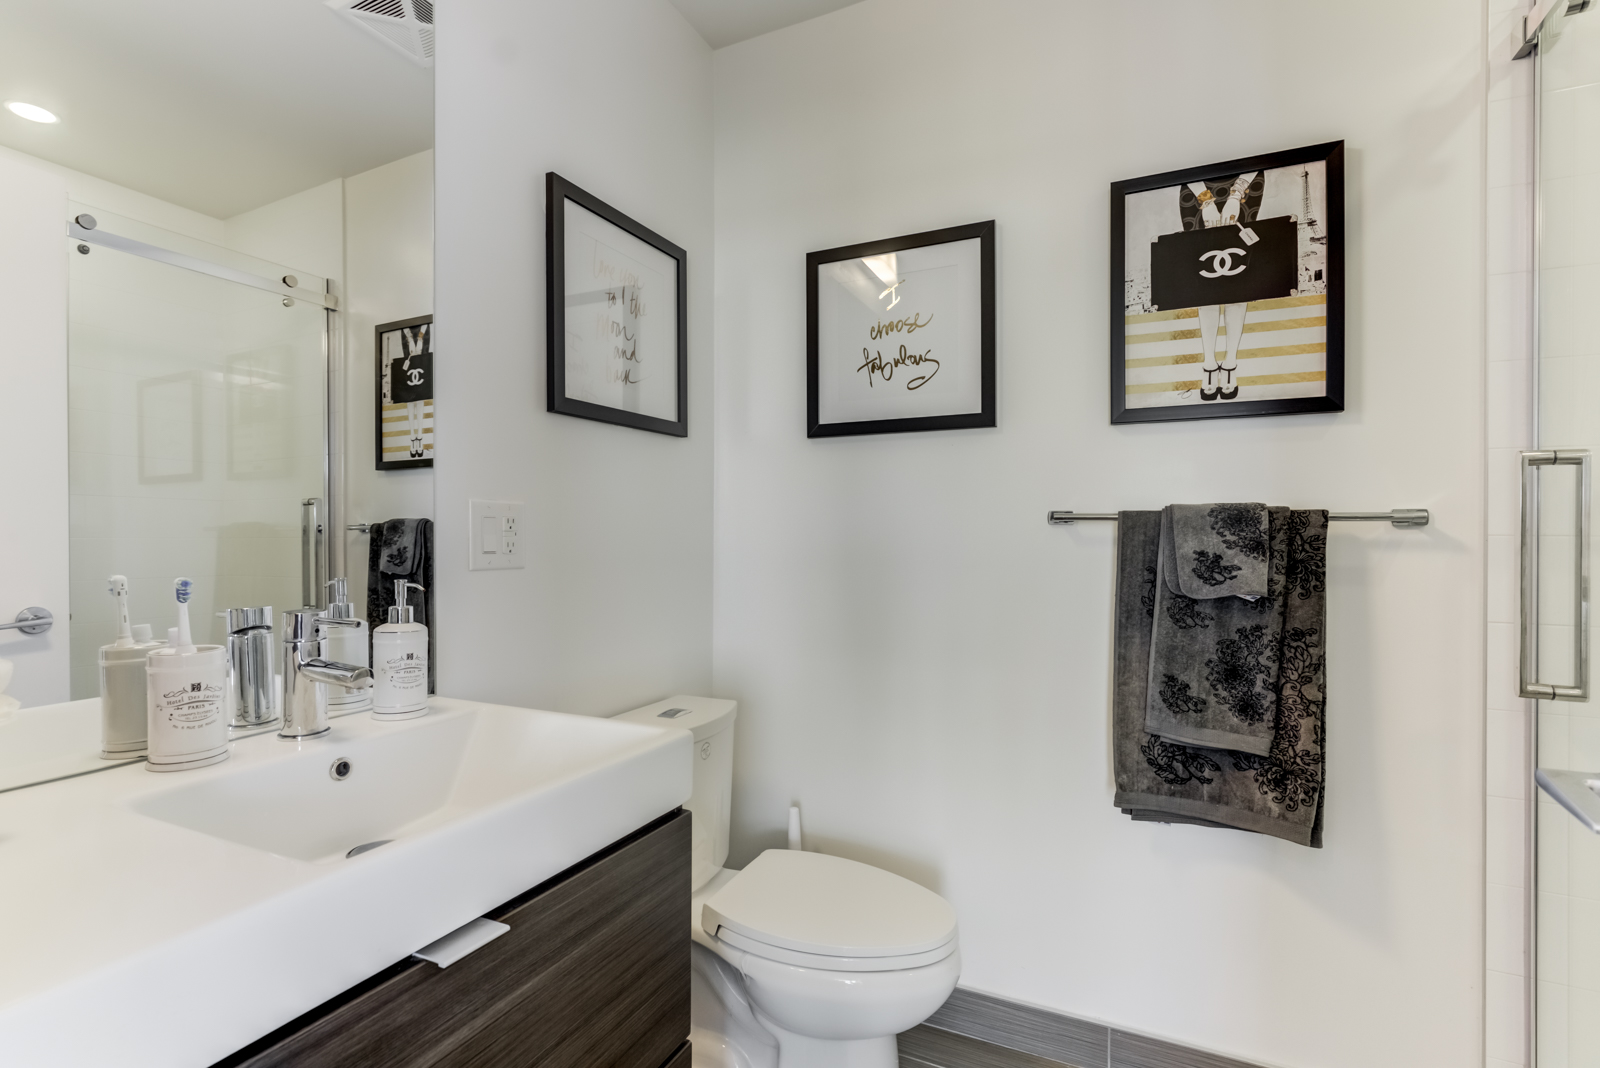 Second bathroom with dark picture frames, dark towel, white sink, and tall mirror.